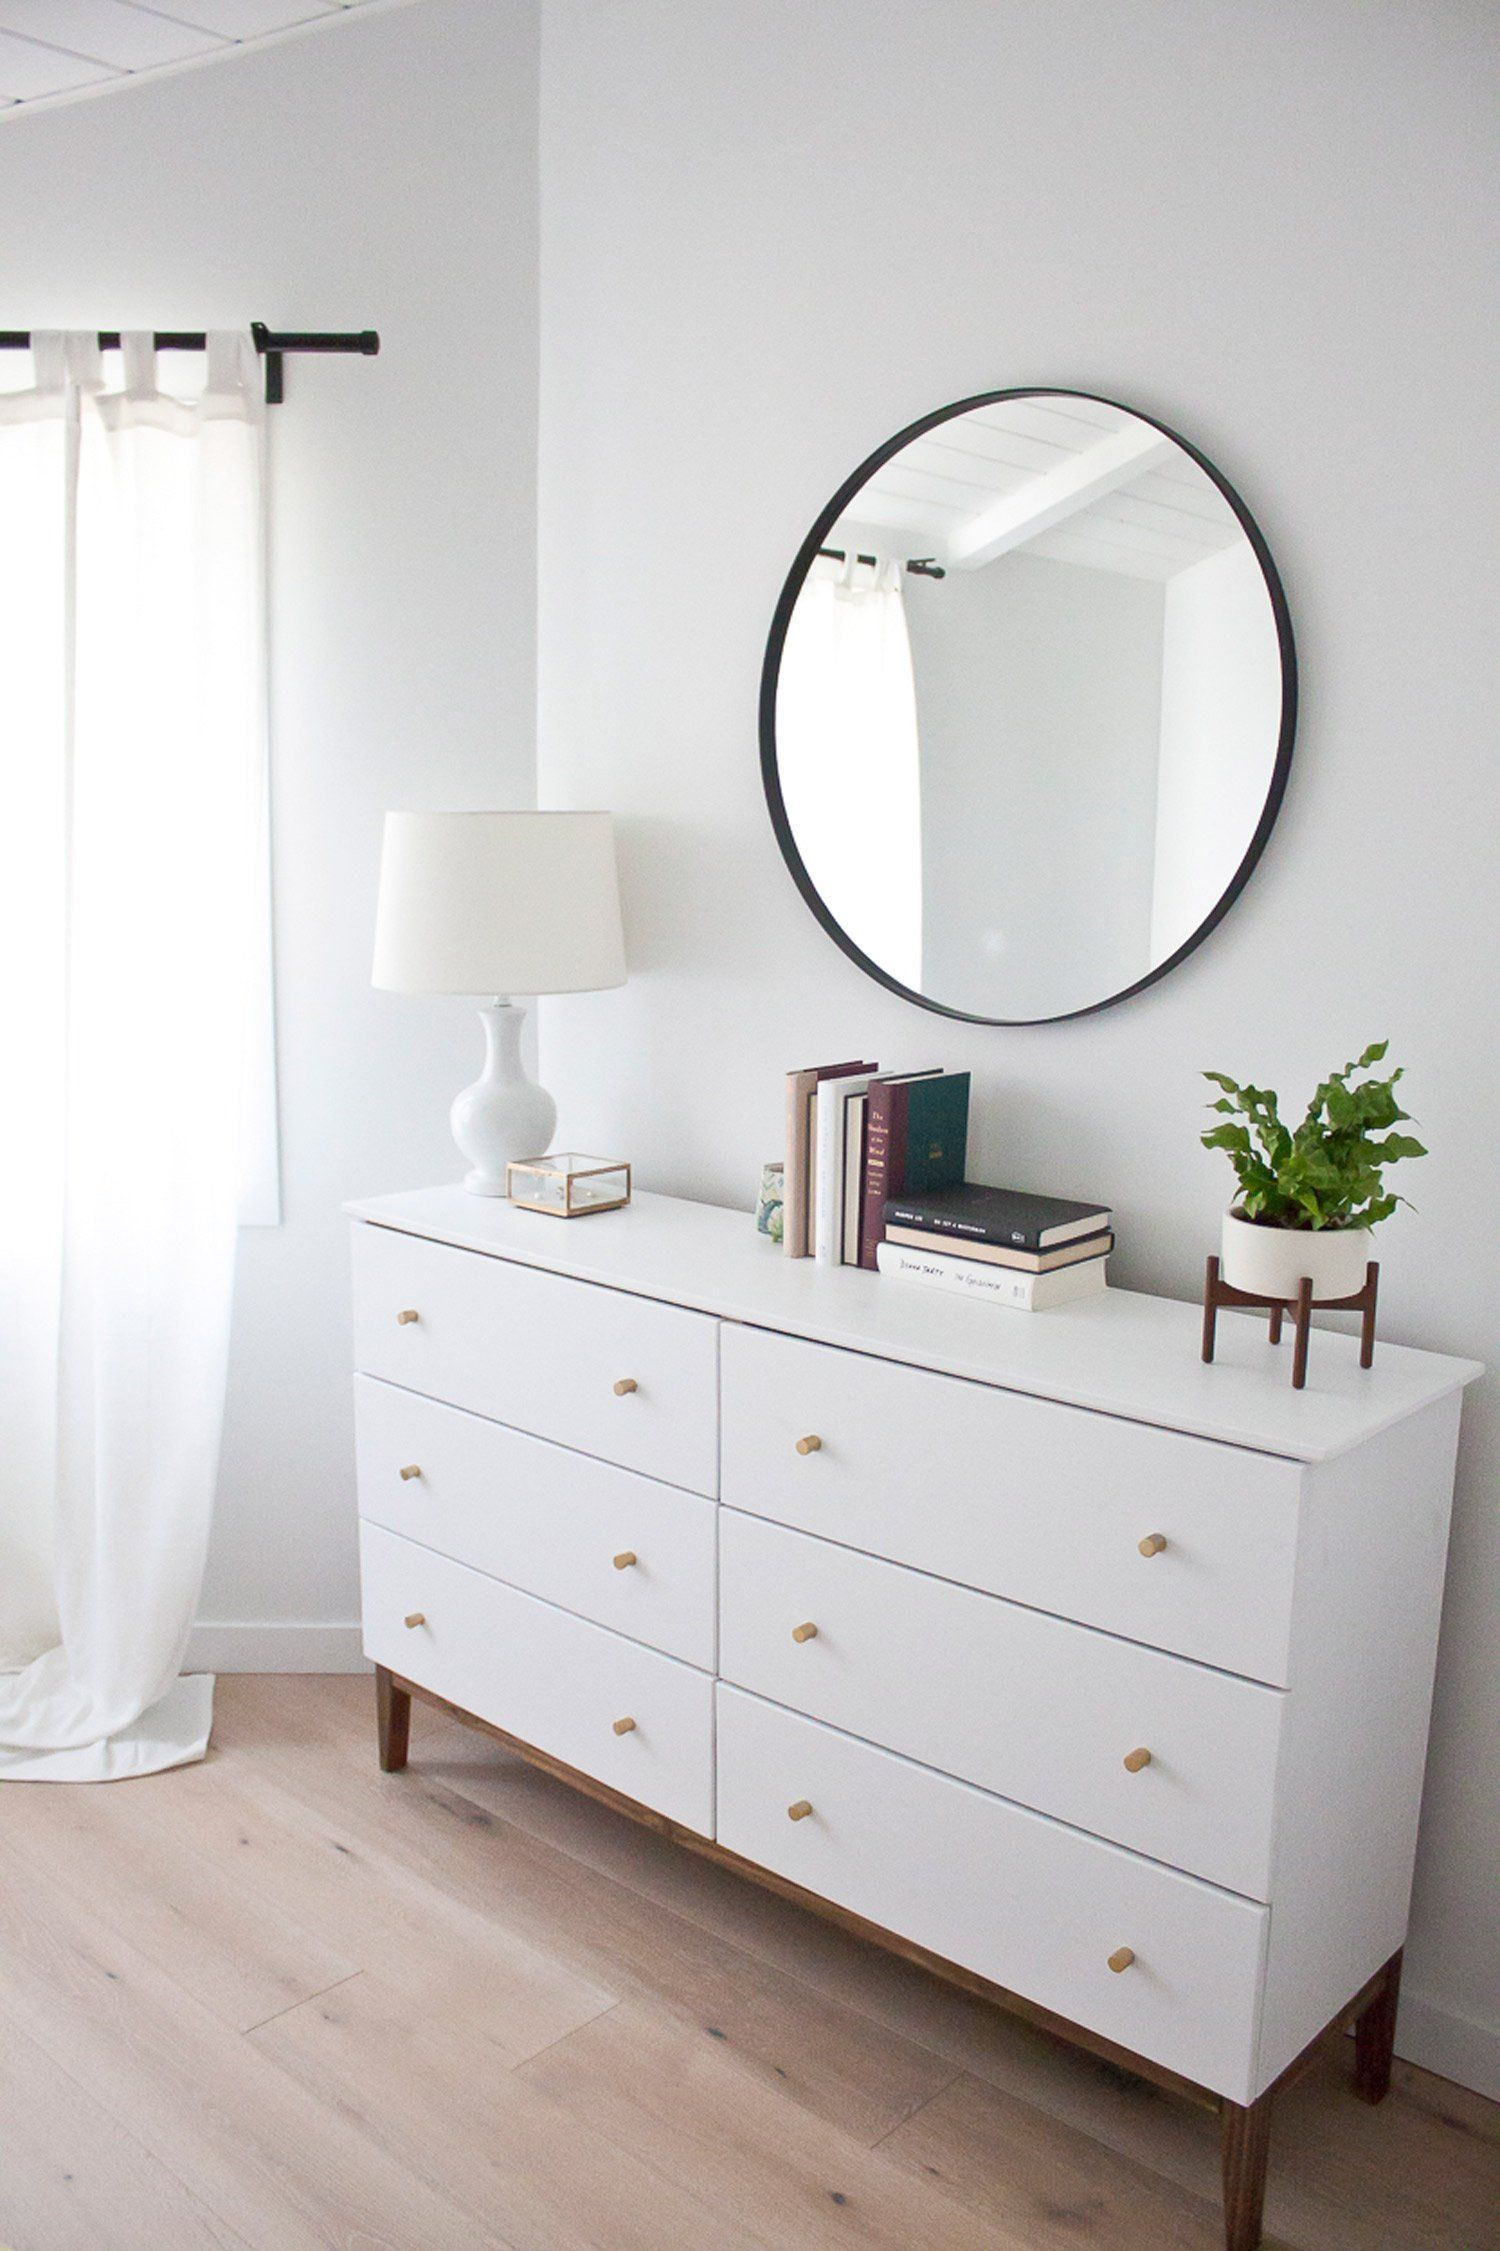 How to Make an Ikea Dresser Look Like a Midcentury Splurge | Mid ...